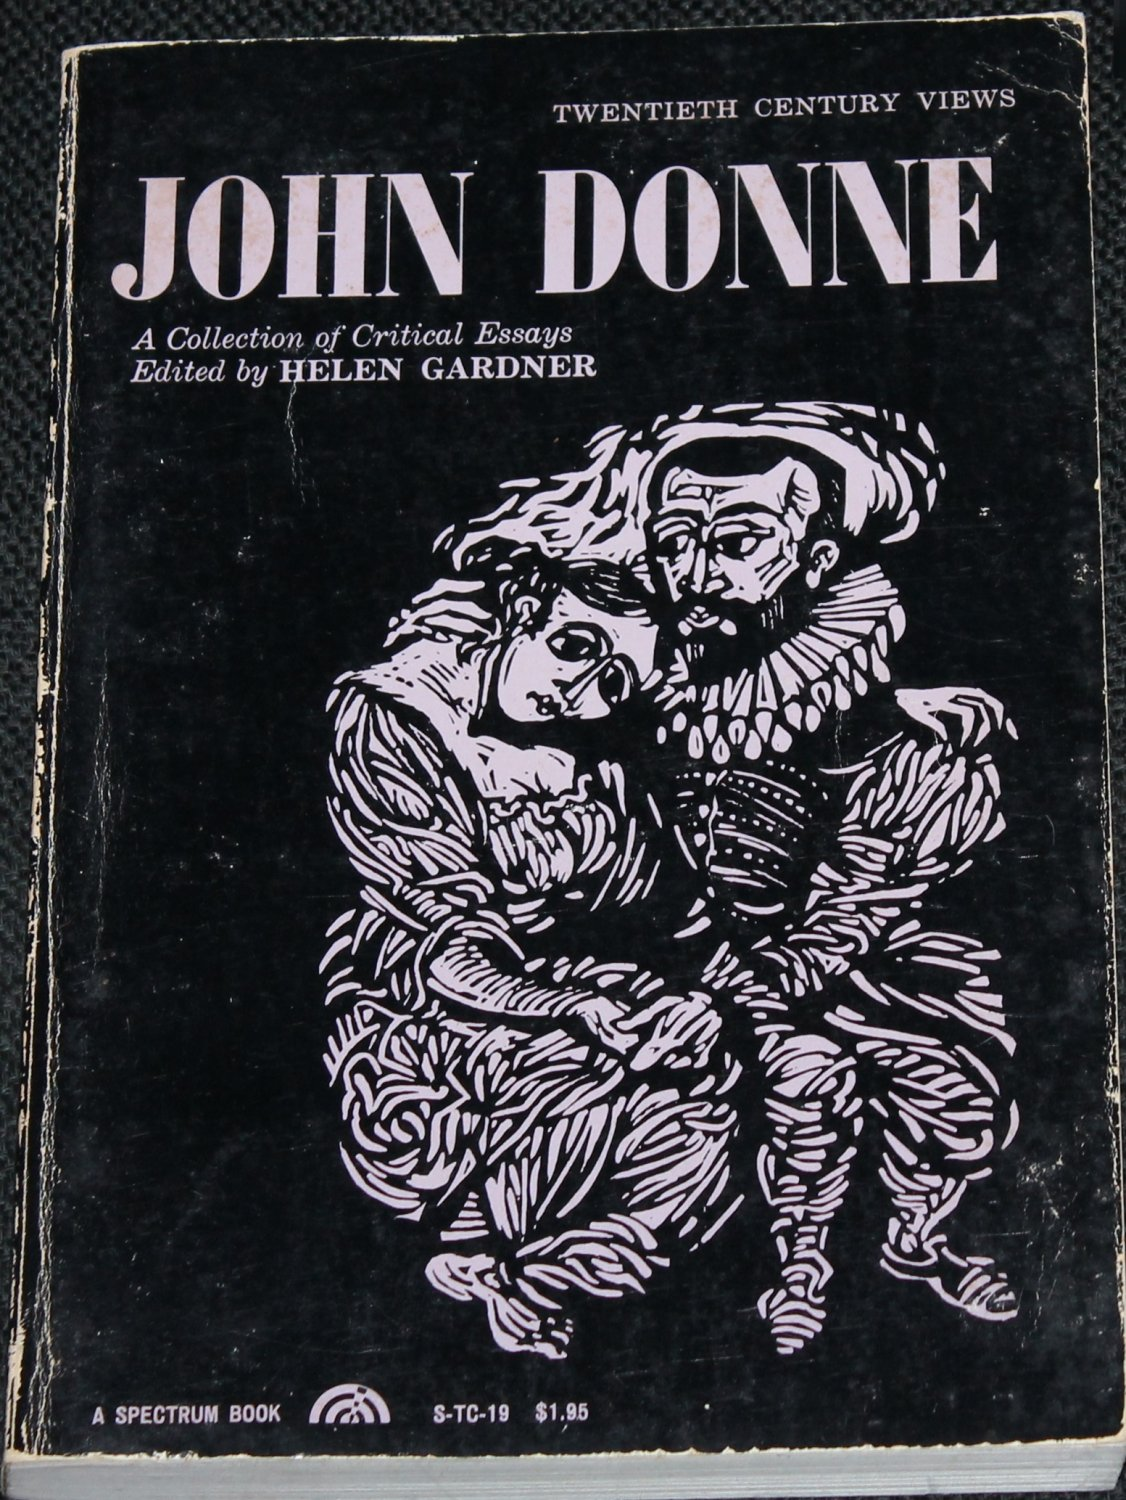 john donne critical essays John donne (1572-1631) he has taken a strand of hair from the lady out of love and he has bound it around his wrist the persona here comes close to being critical of the lady who seems to have allowed nothing more than formal kisses and a strand of hair a keepsake.